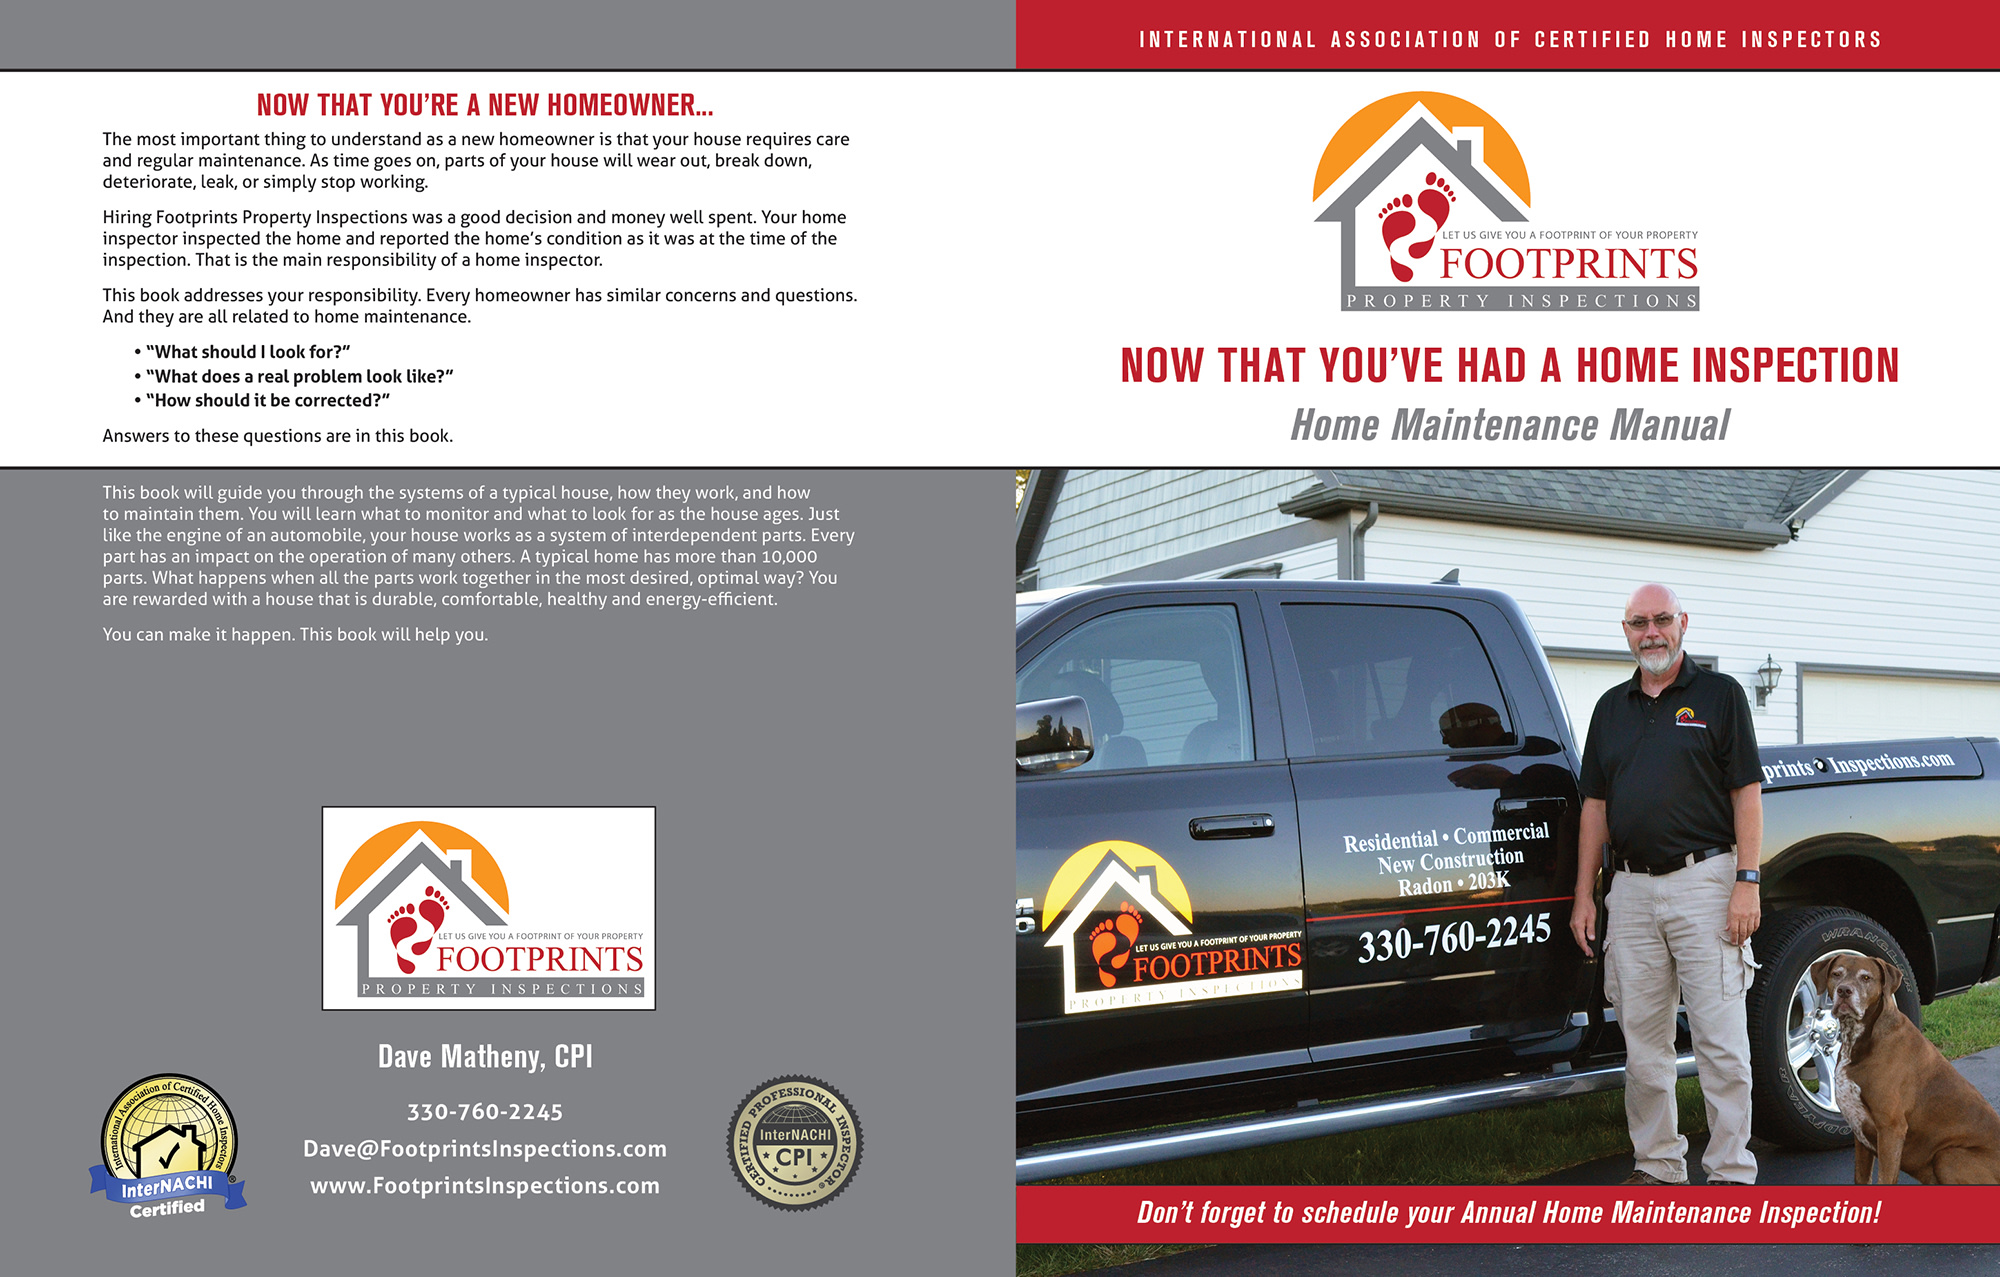 Custom Home Maintenance Book for Footprints Property Inspections.